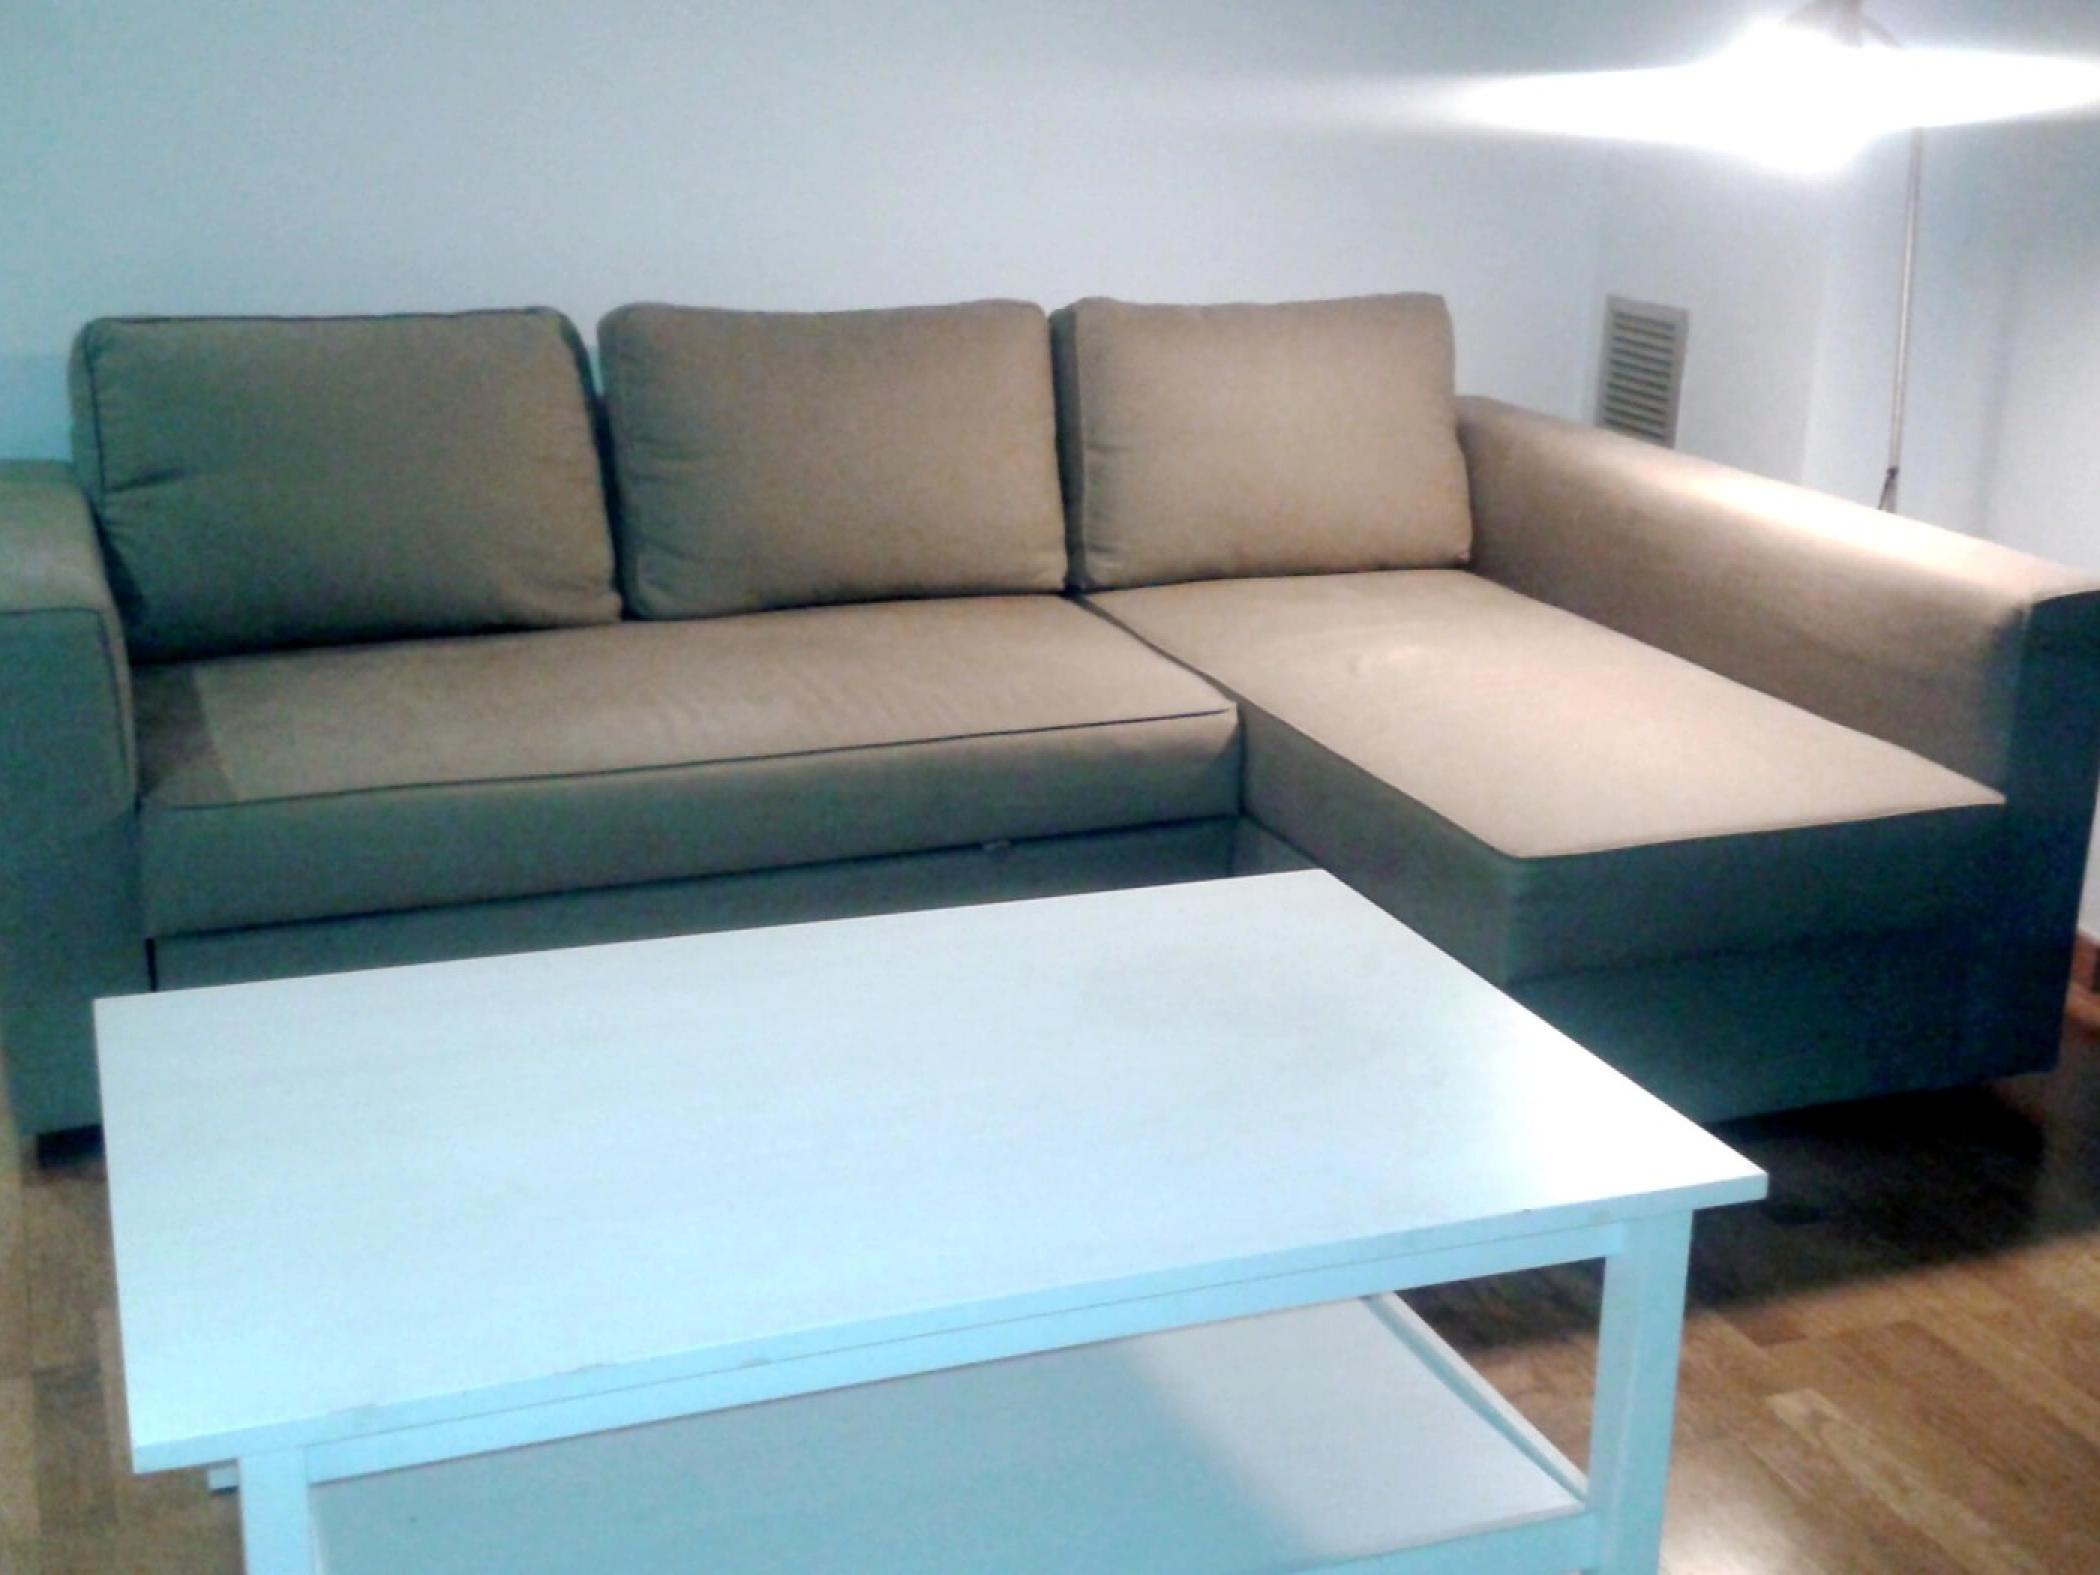 Rent Apartment in Girona - Girona Pou Rodó 22 - 10